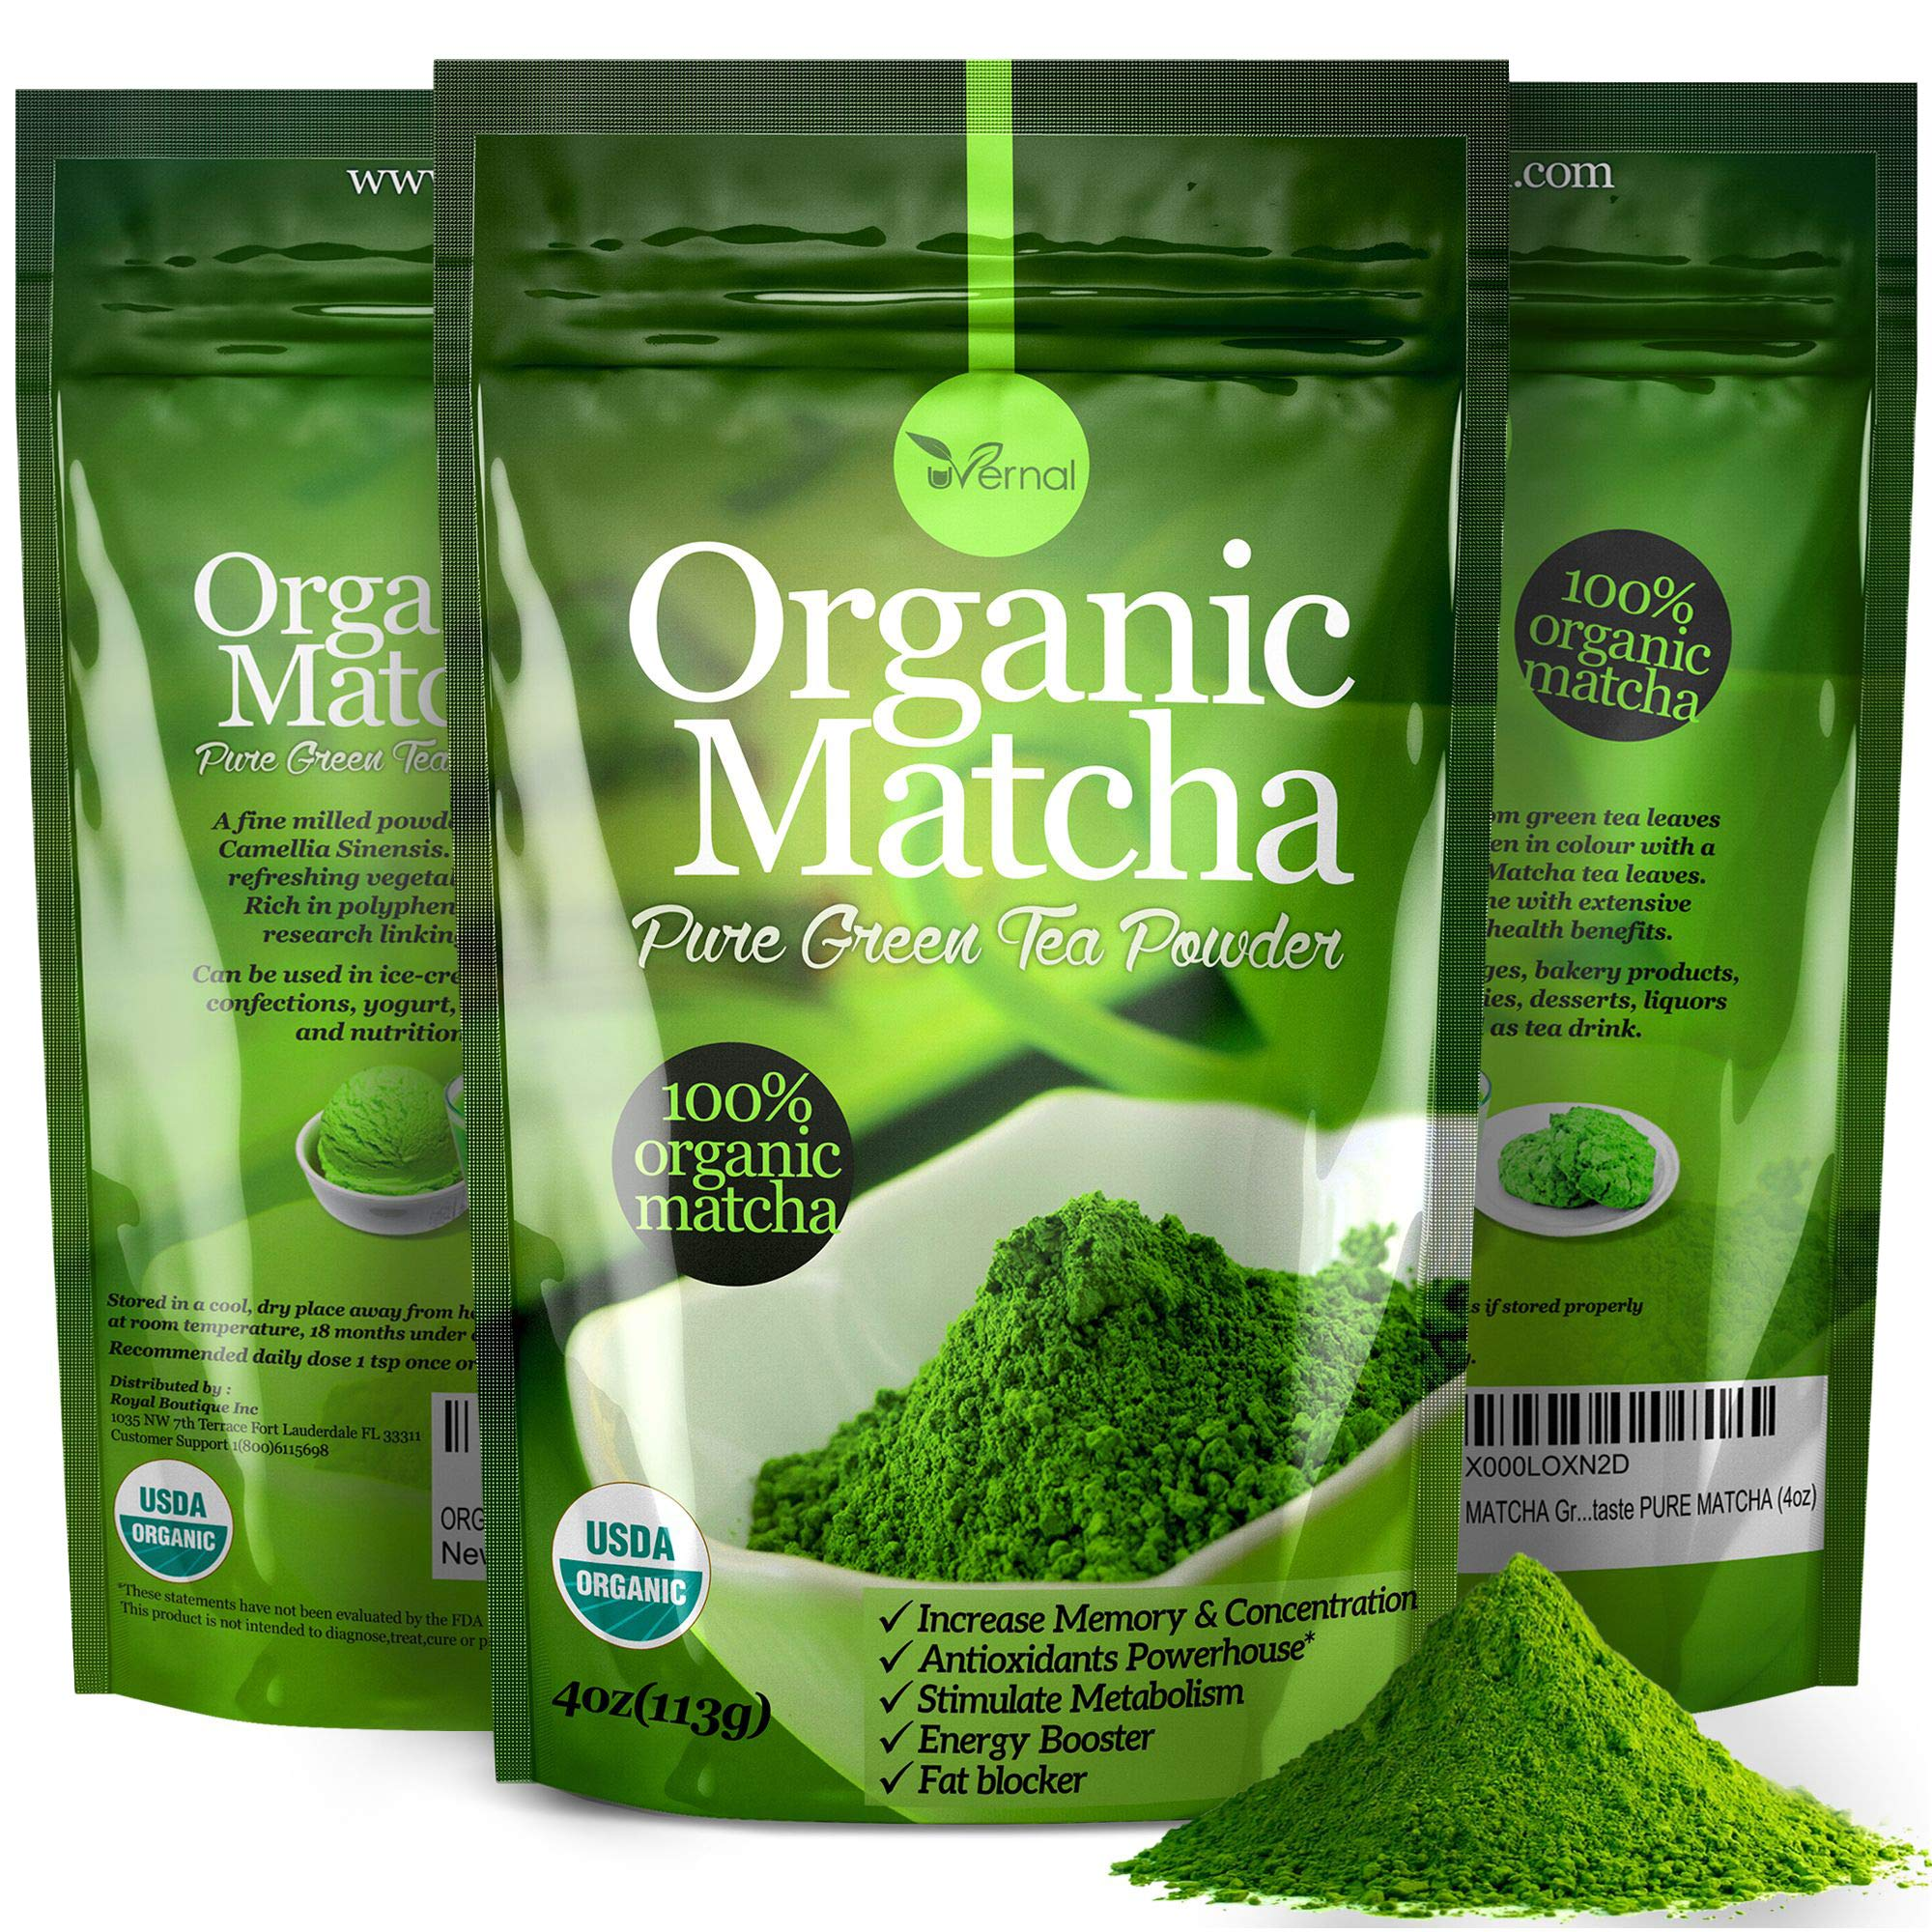 Organic Matcha Green Tea Powder USDA Certified - 100% Pure Macha Ceremonial and Culinary Grade for Smoothies and Baking - 4oz 113g by uVernal